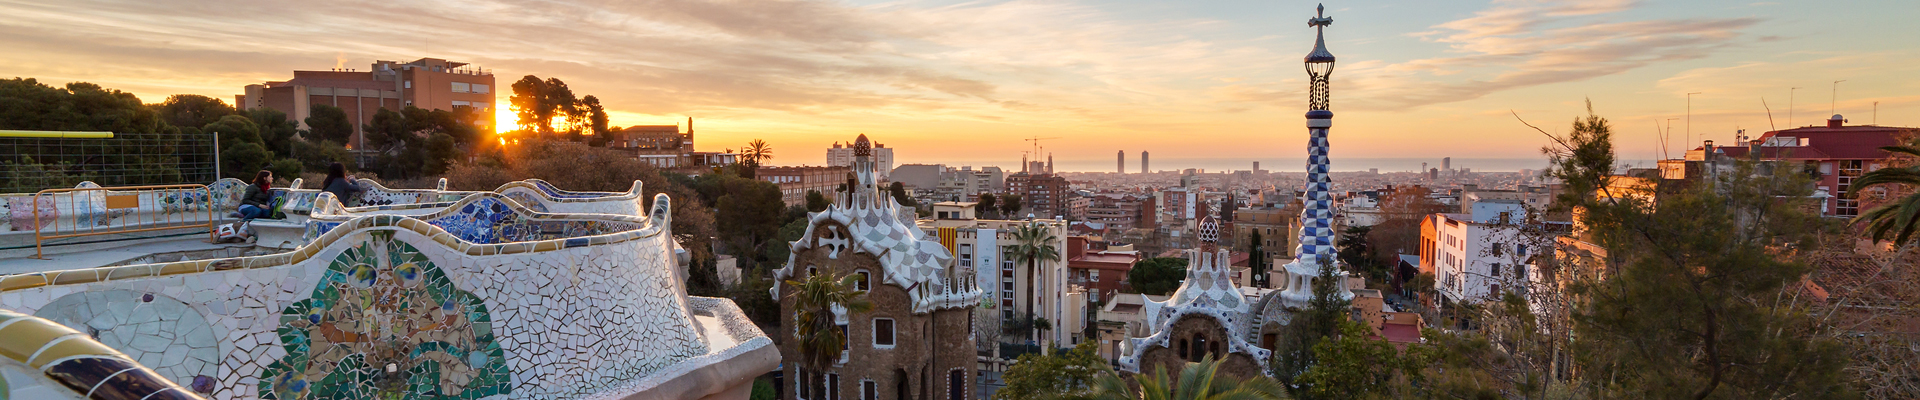 Barcelona's Iconic Park Guell